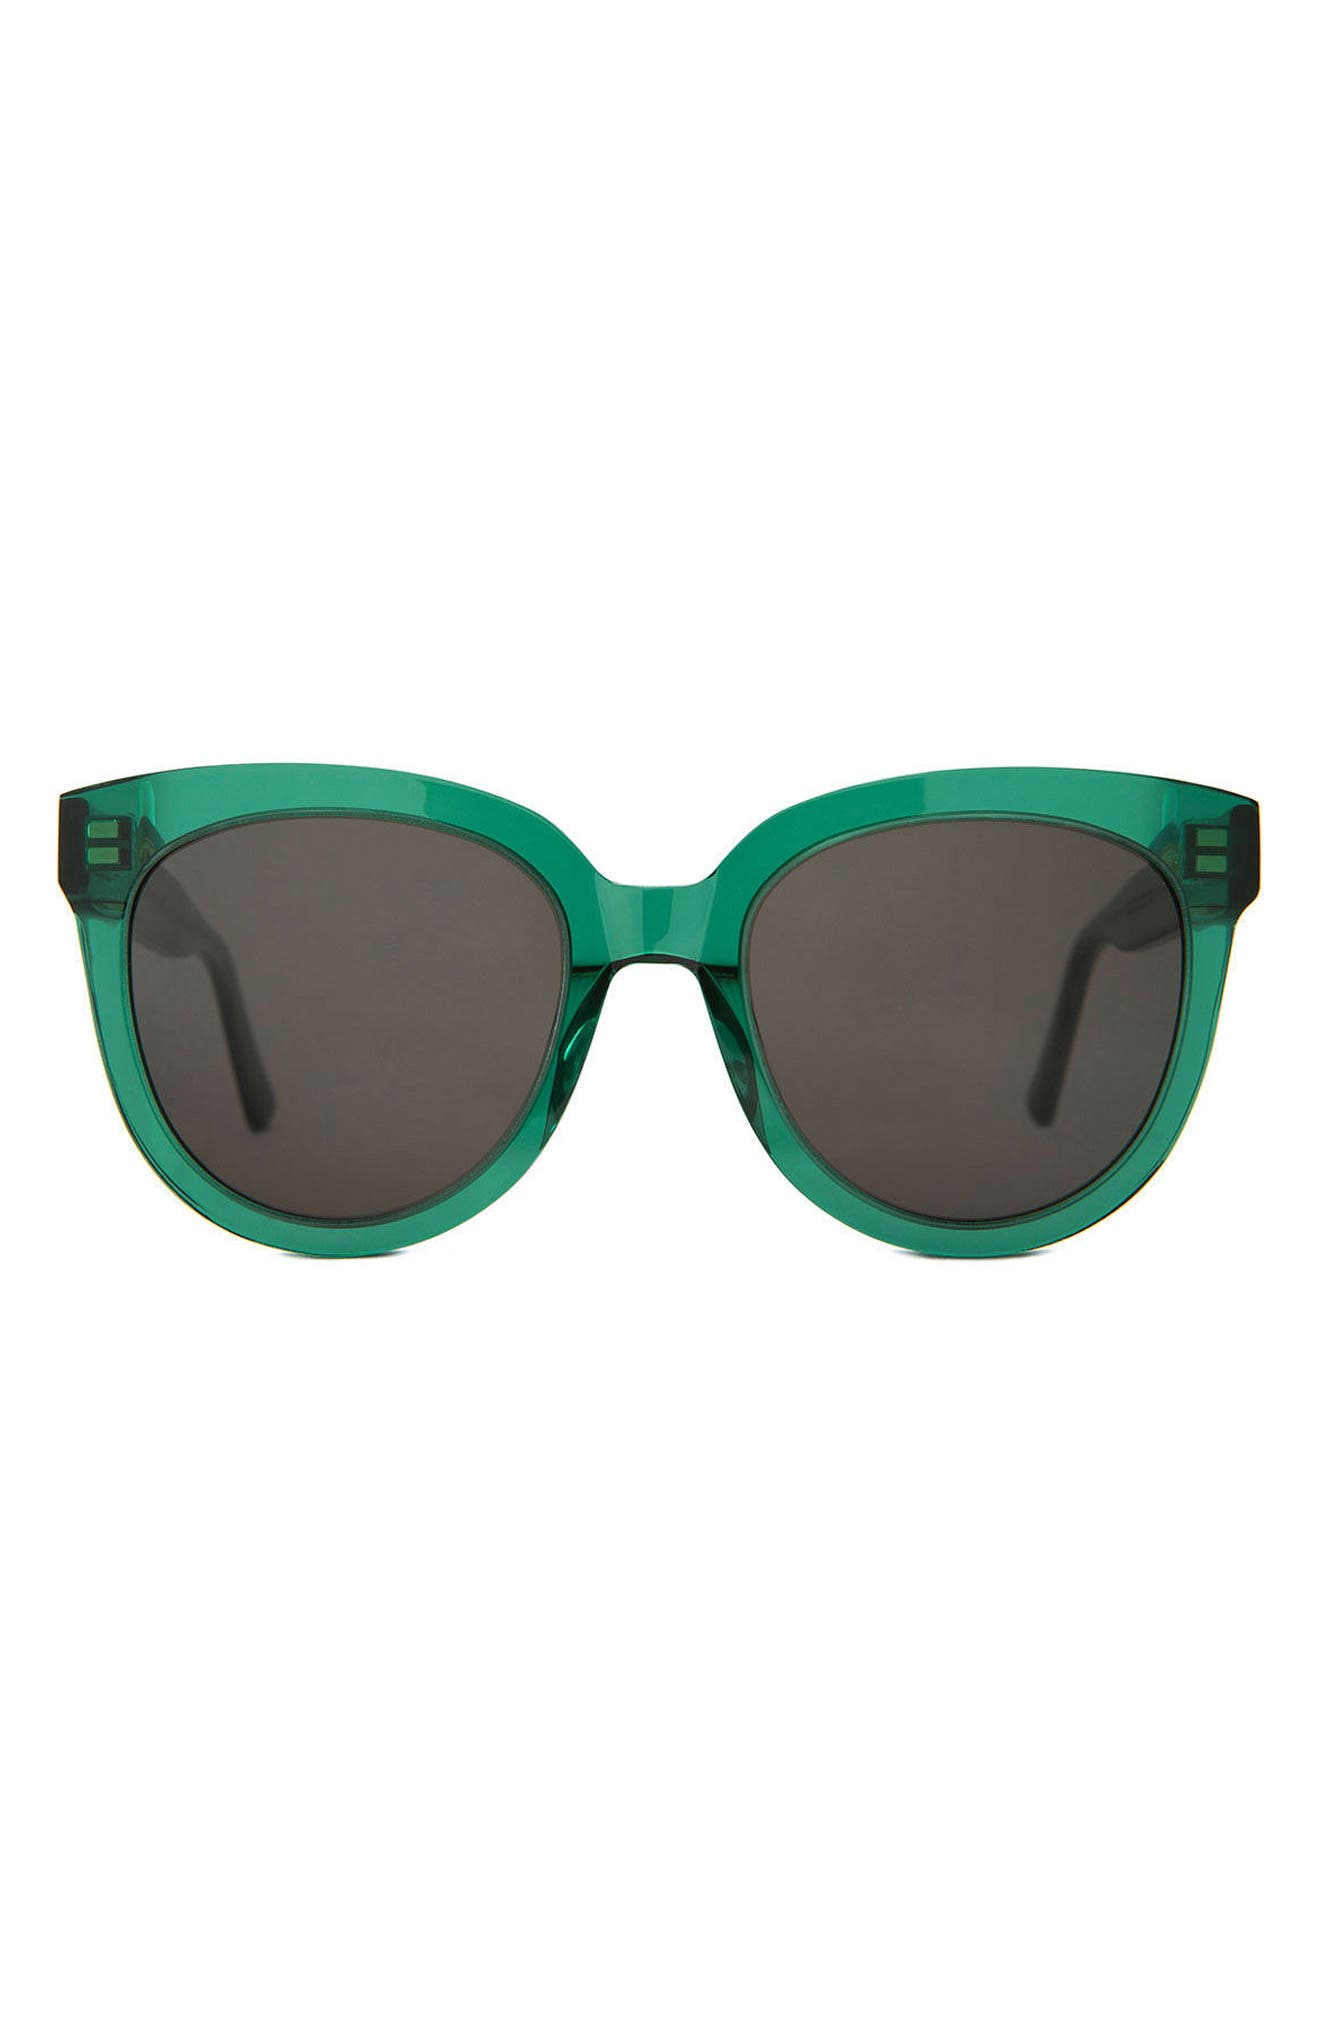 Illusion 53mm Sunglasses,                         Main,                         color, 300